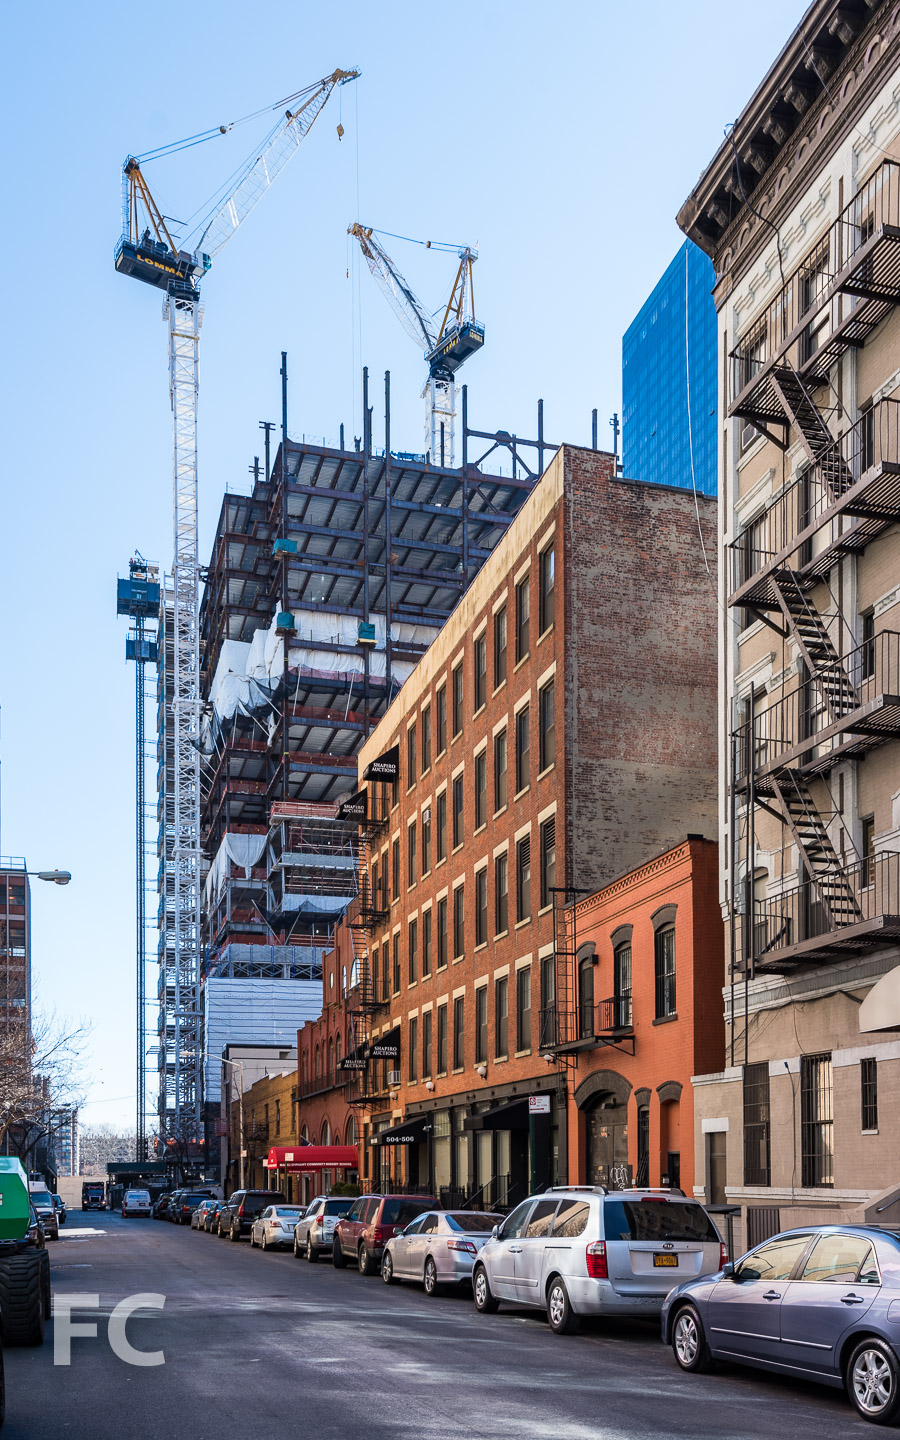 Northwest corner from East 74th Street.